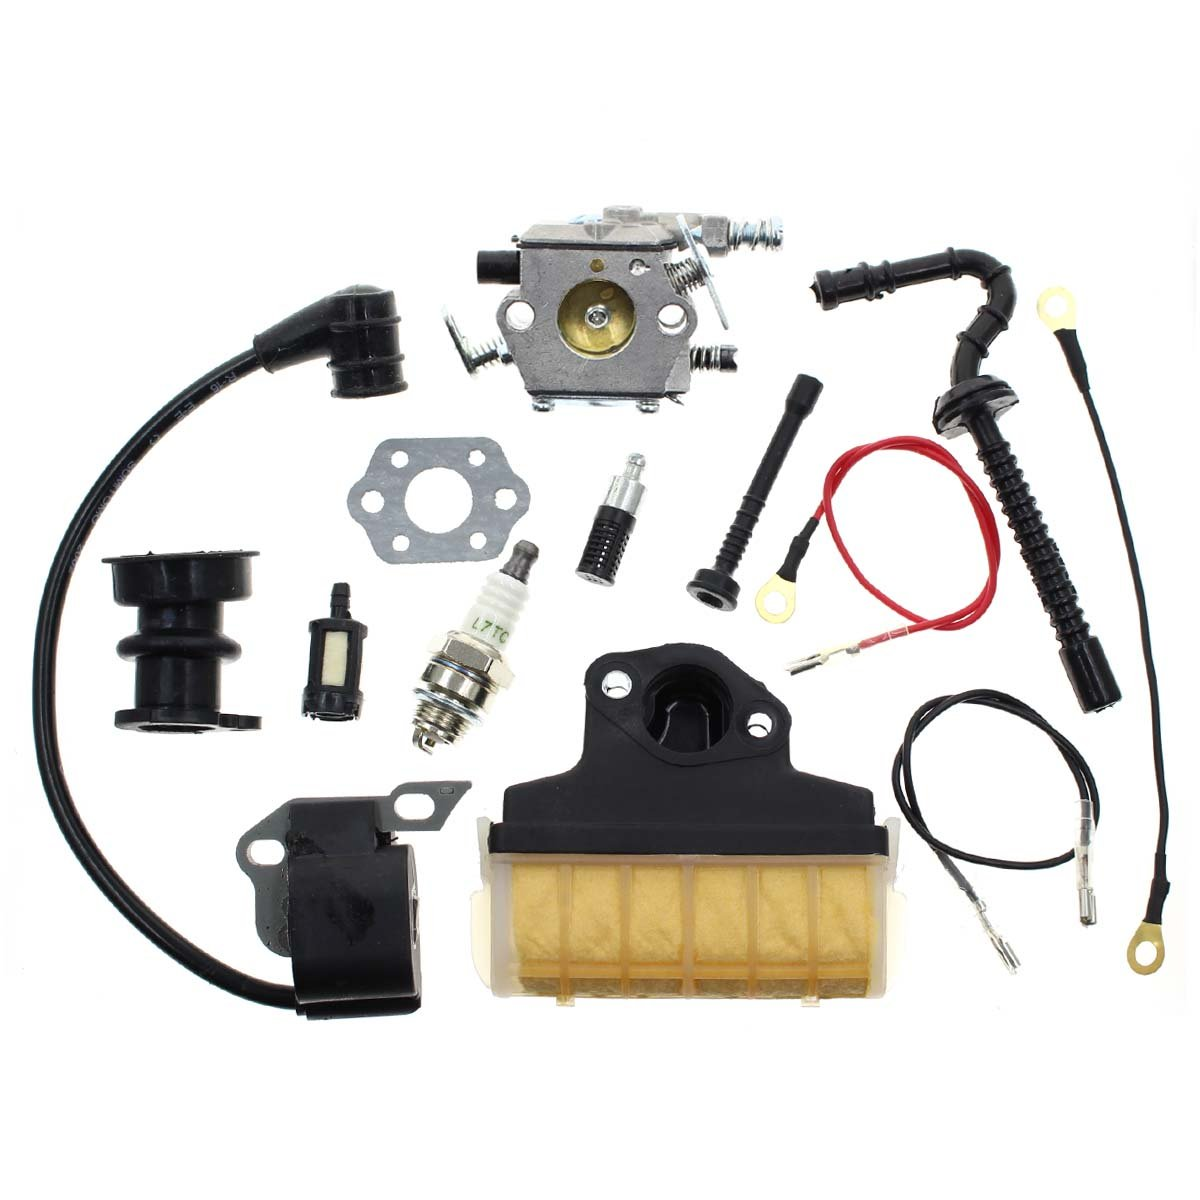 Carbhub Carburetor for Stihl 021 023 025 MS210 MS230 MS250 Chainsaw Carb with 1123 160 1650 Air Filter Ignition Coil Fuel Line Tune Up Kit Replace Walbro WT286 by Carbhub